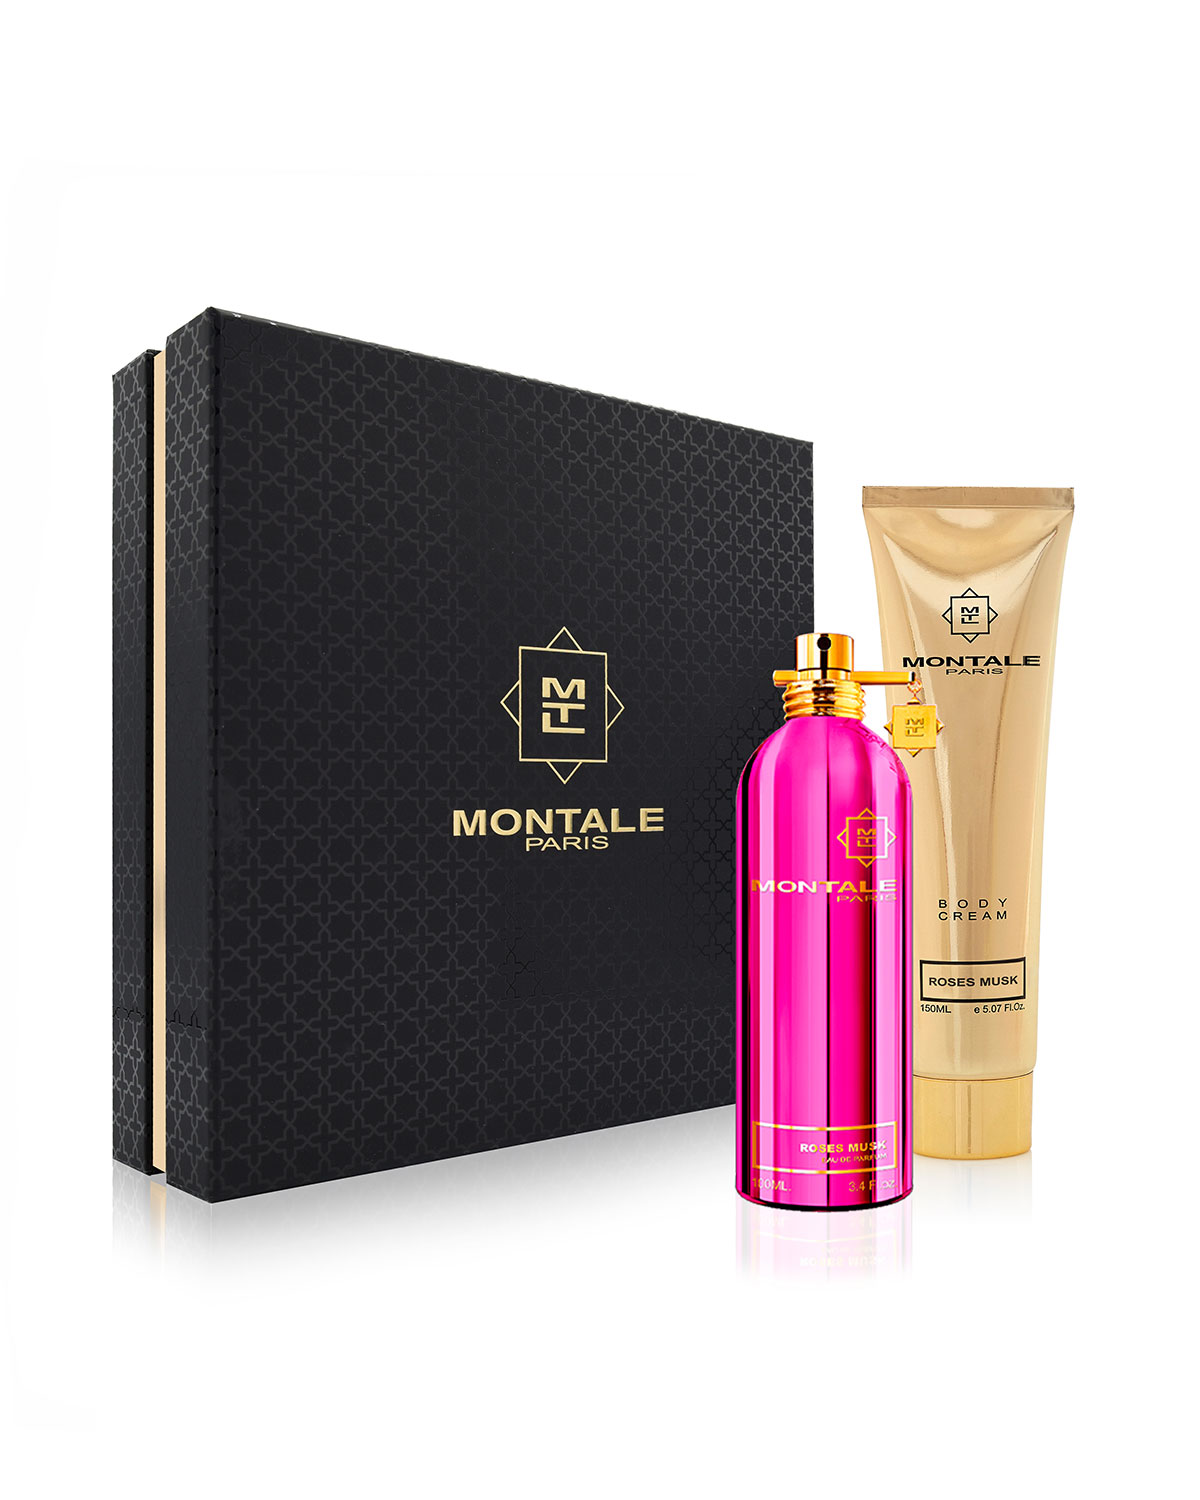 Montale Roses Musk Gift Set ($218 Value)